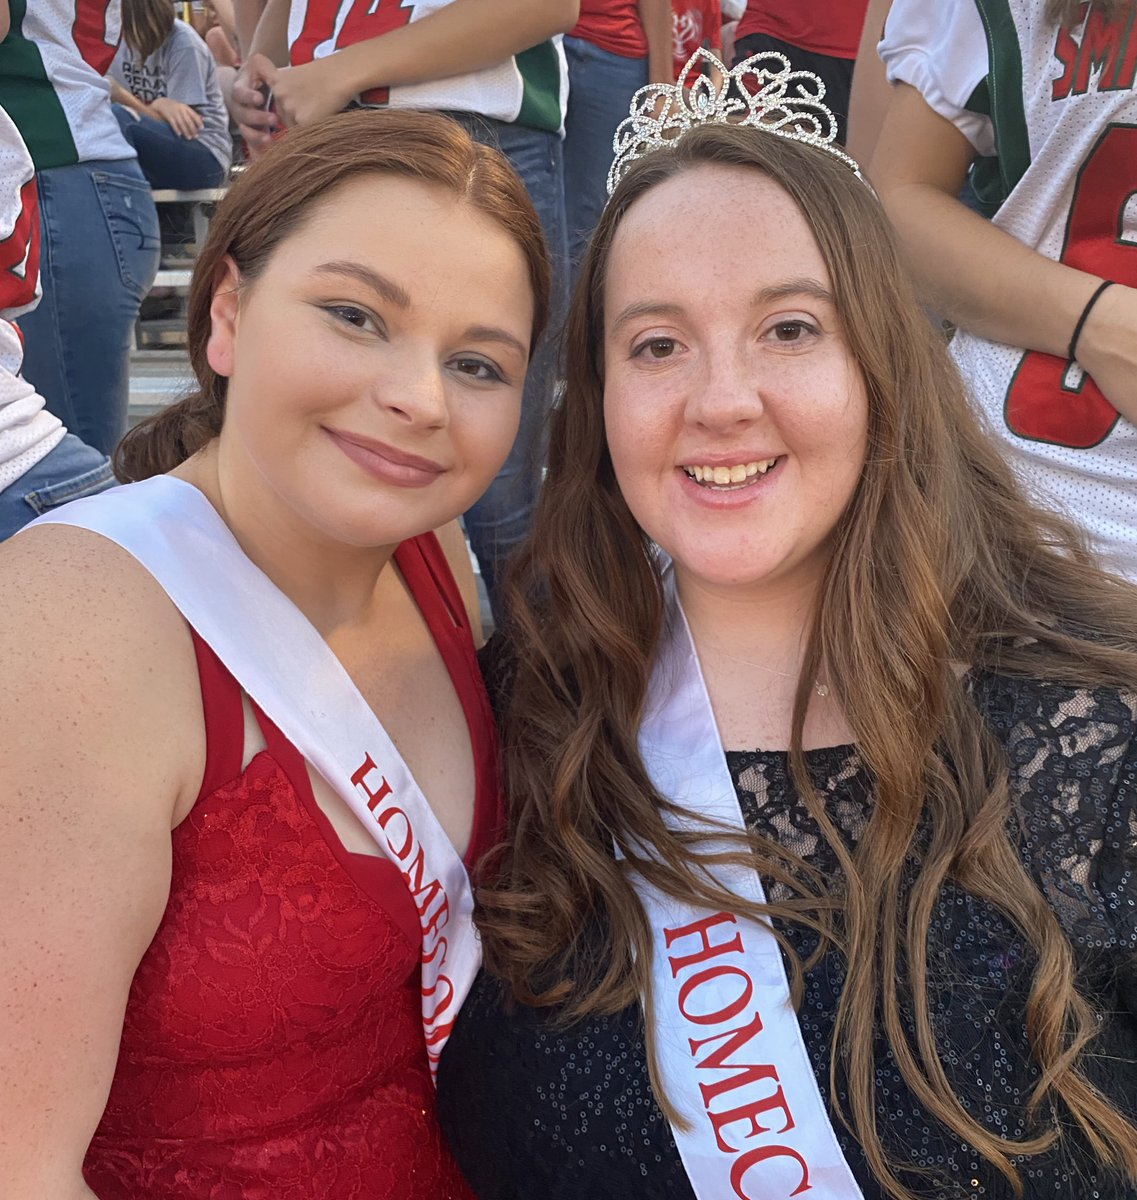 ❤️💚Congratulations to Homecoming👑Queen Alex and Candidate Jaci!❤️💚 #BetheChange https://t.co/eS2yVuEvSI